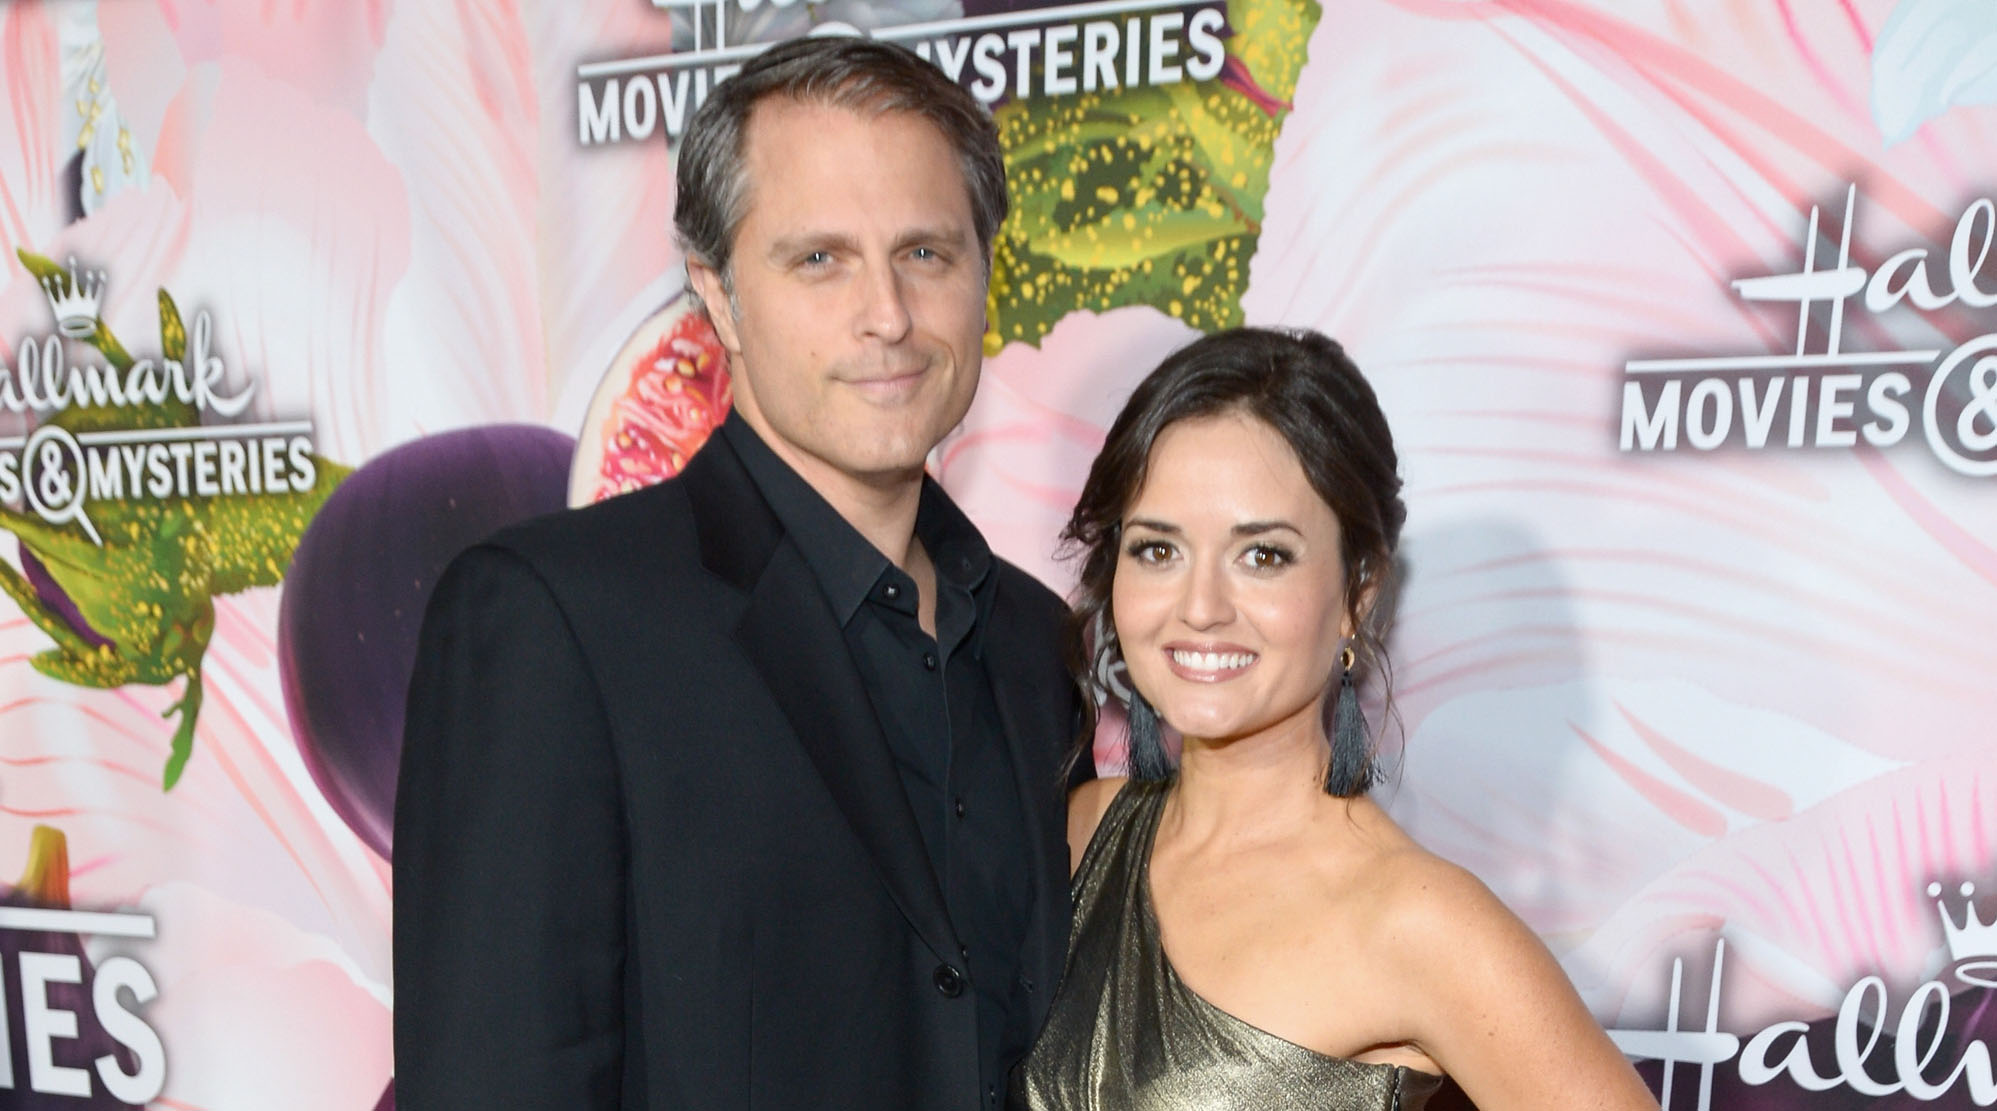 ExclusiveDanica McKellar Says Spending Time With Family Brings Her the Most Joy: 'There's No Contest'